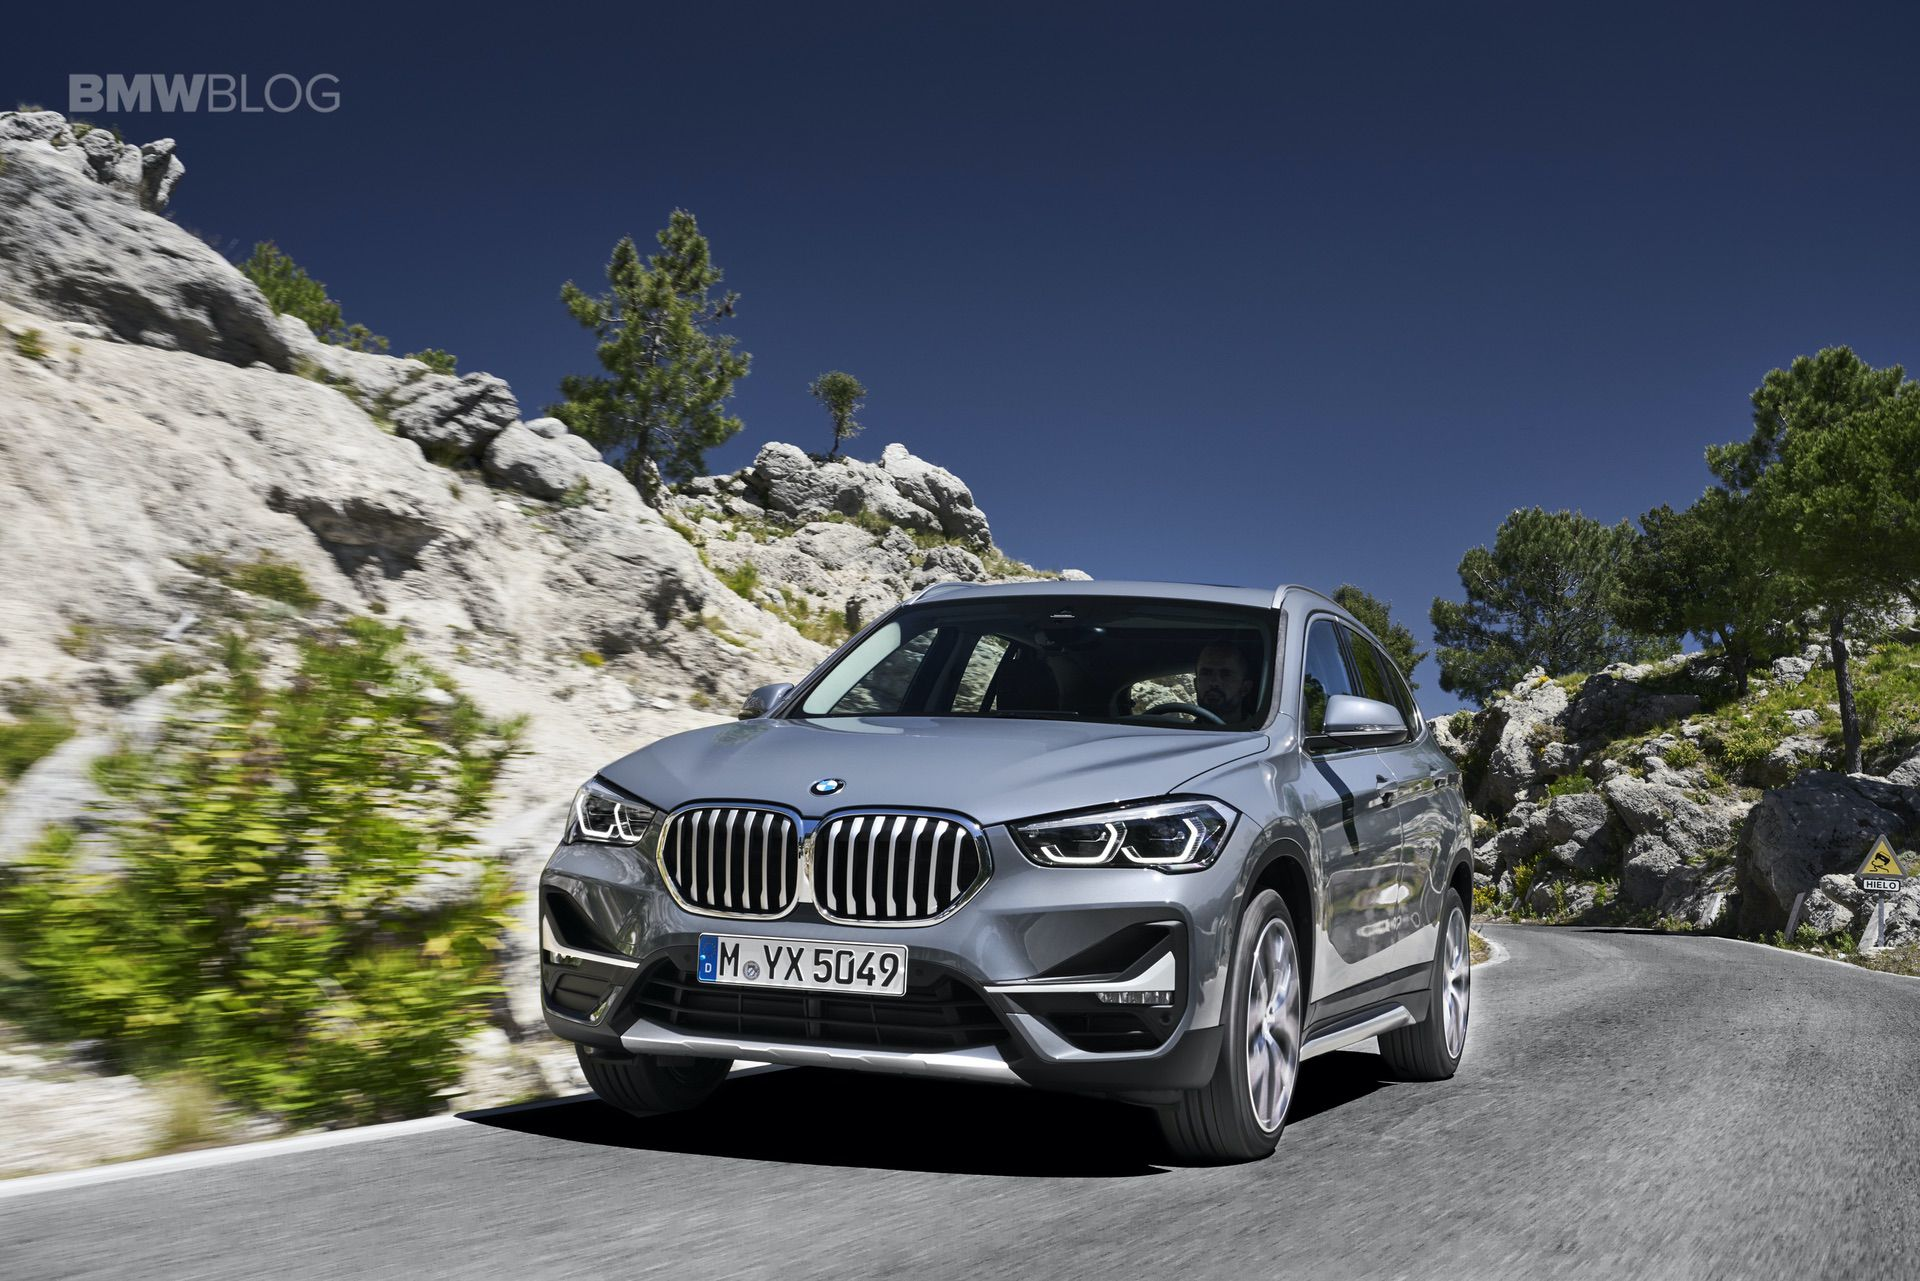 Bmw Exterior: Photo Comparison: New 2019 BMW X1 Facelift Vs. Previous X1